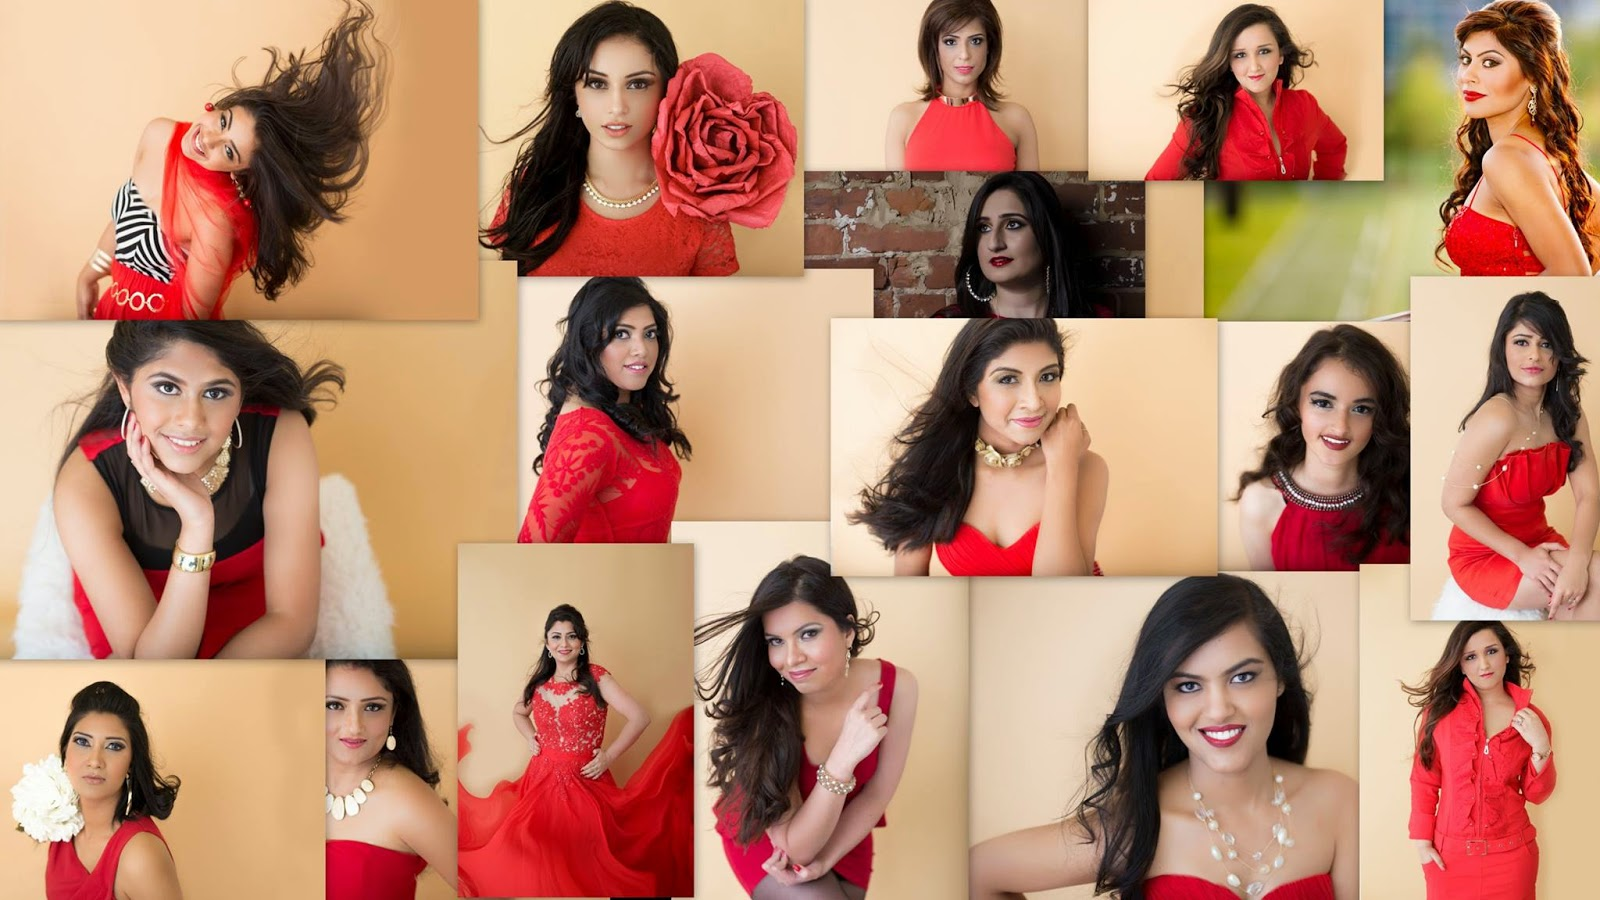 Mrs Indian Washington, ladies in red dress, types of red dresses, red lipstick, indian women, kinds of red dresses, Beautiful women, ravishing show